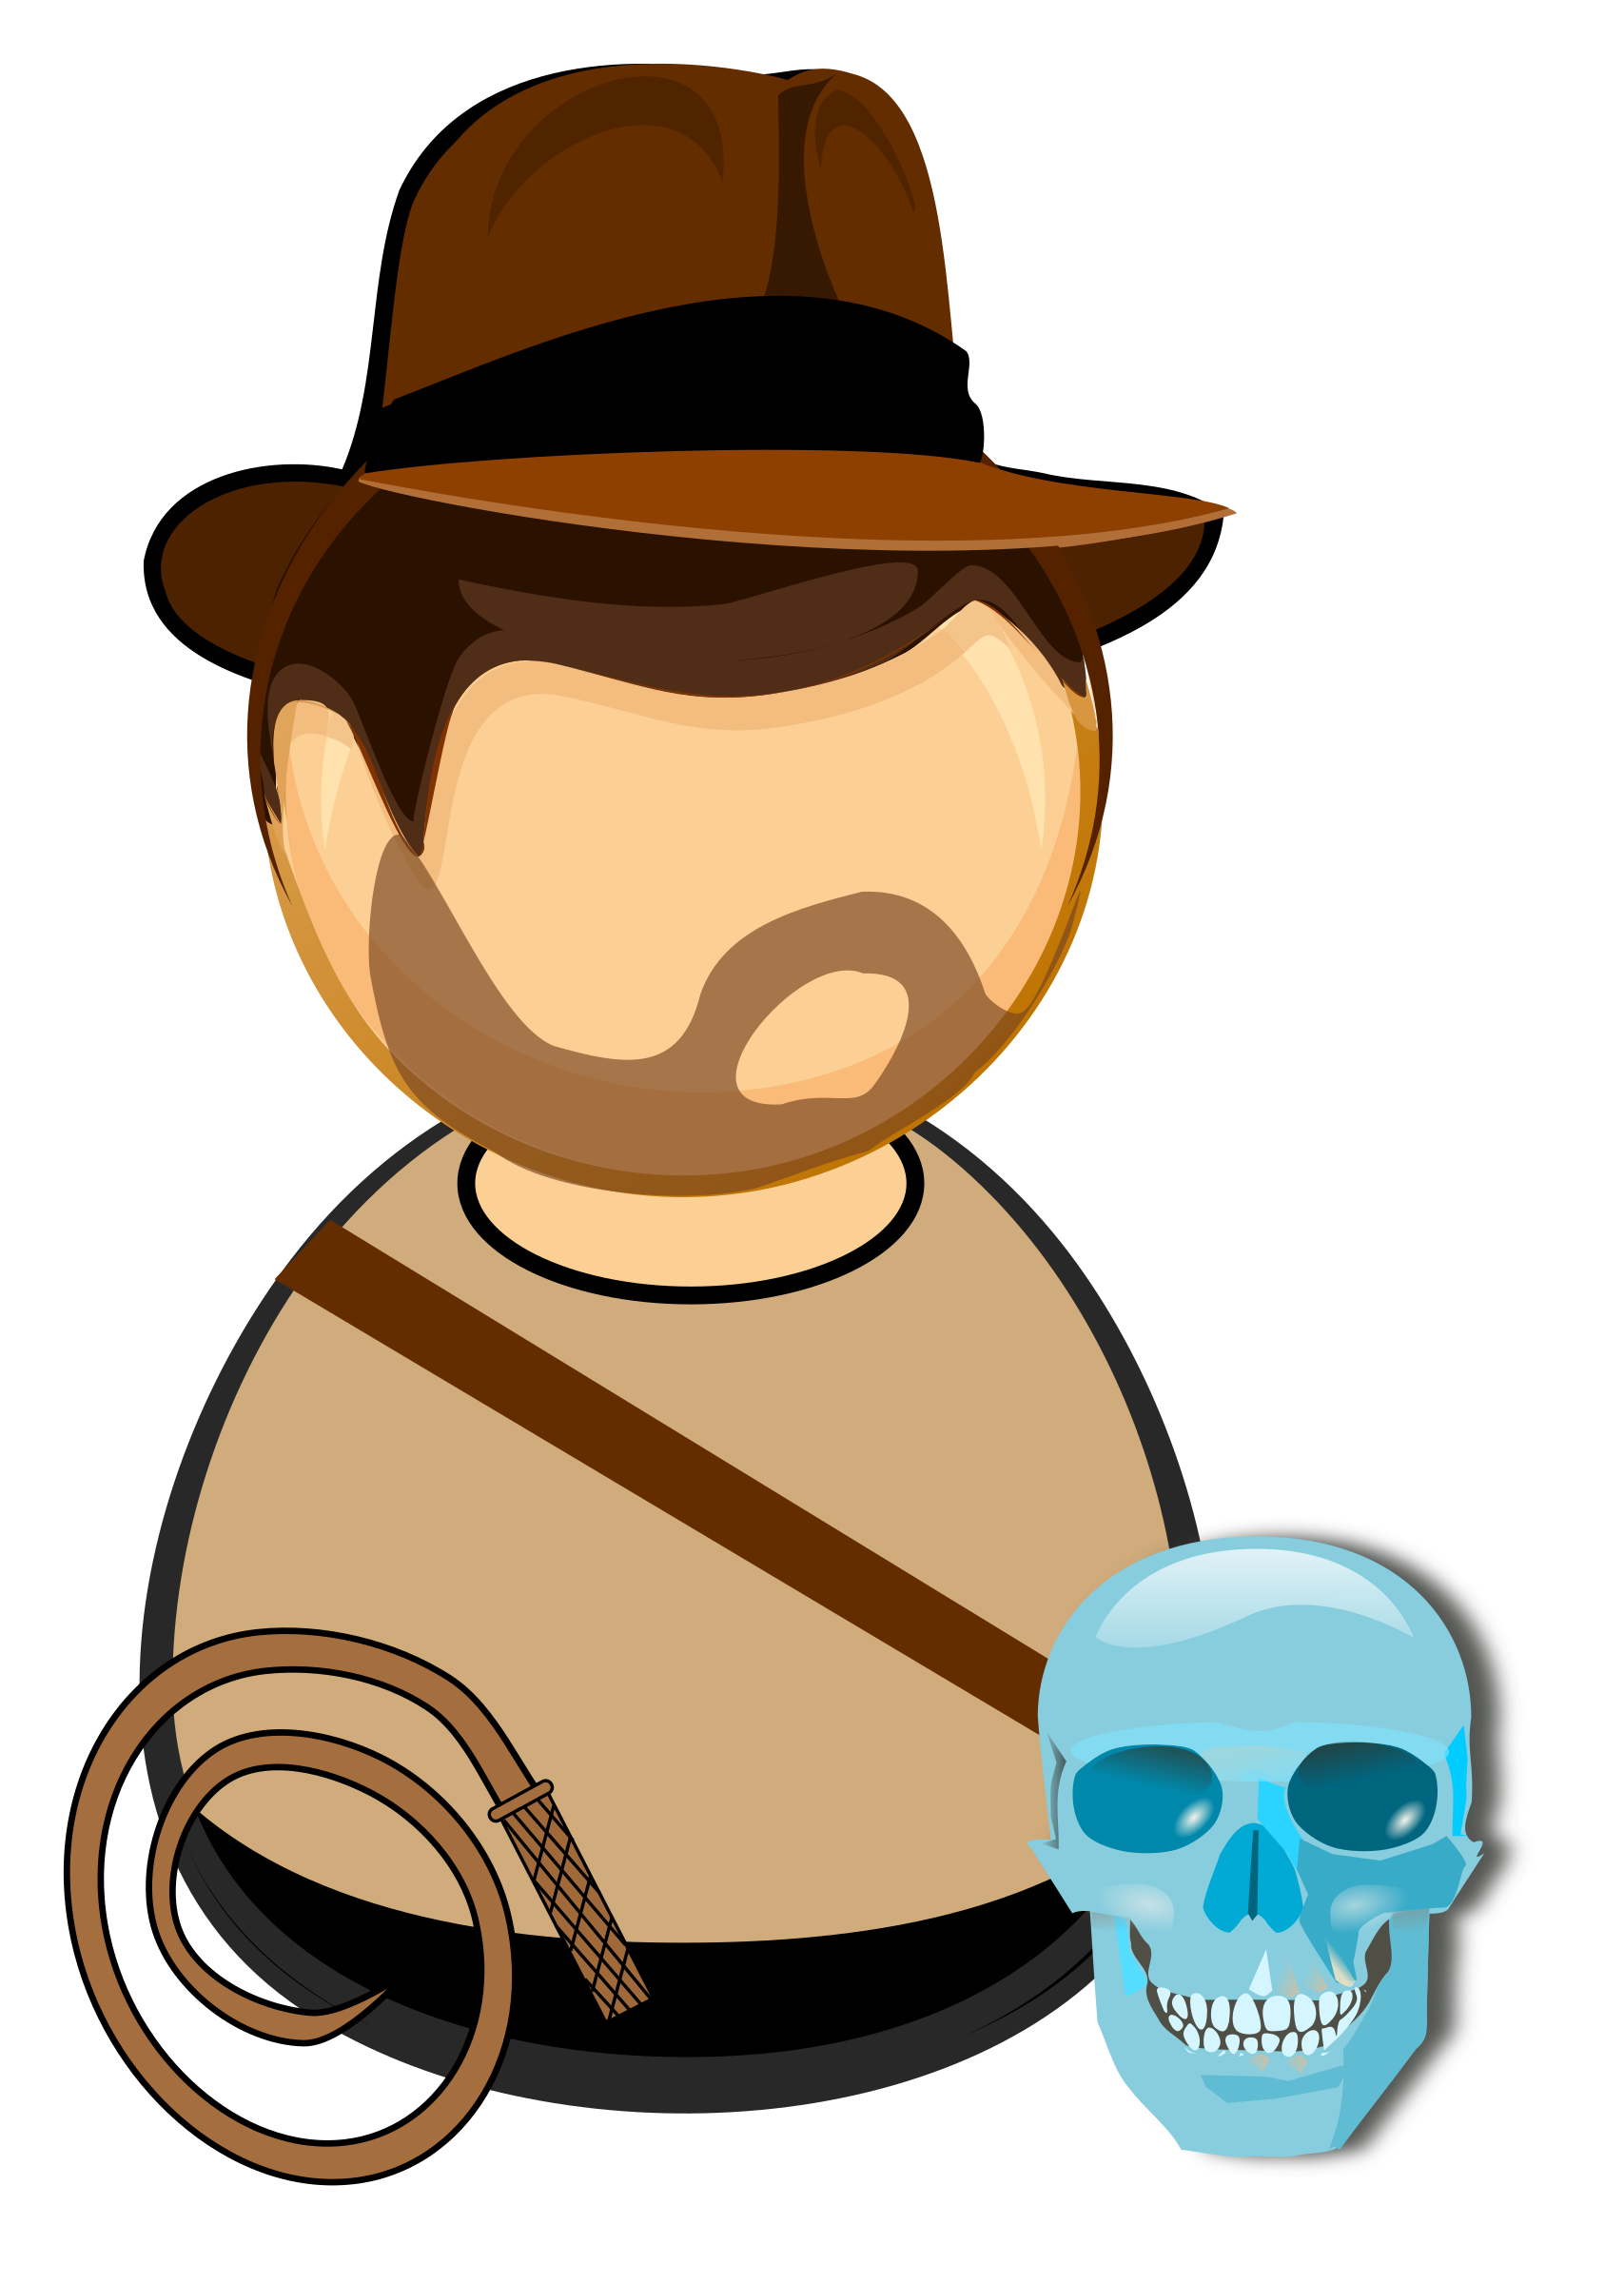 Adventurer in a hat, with a whip and glass skull by Juhele